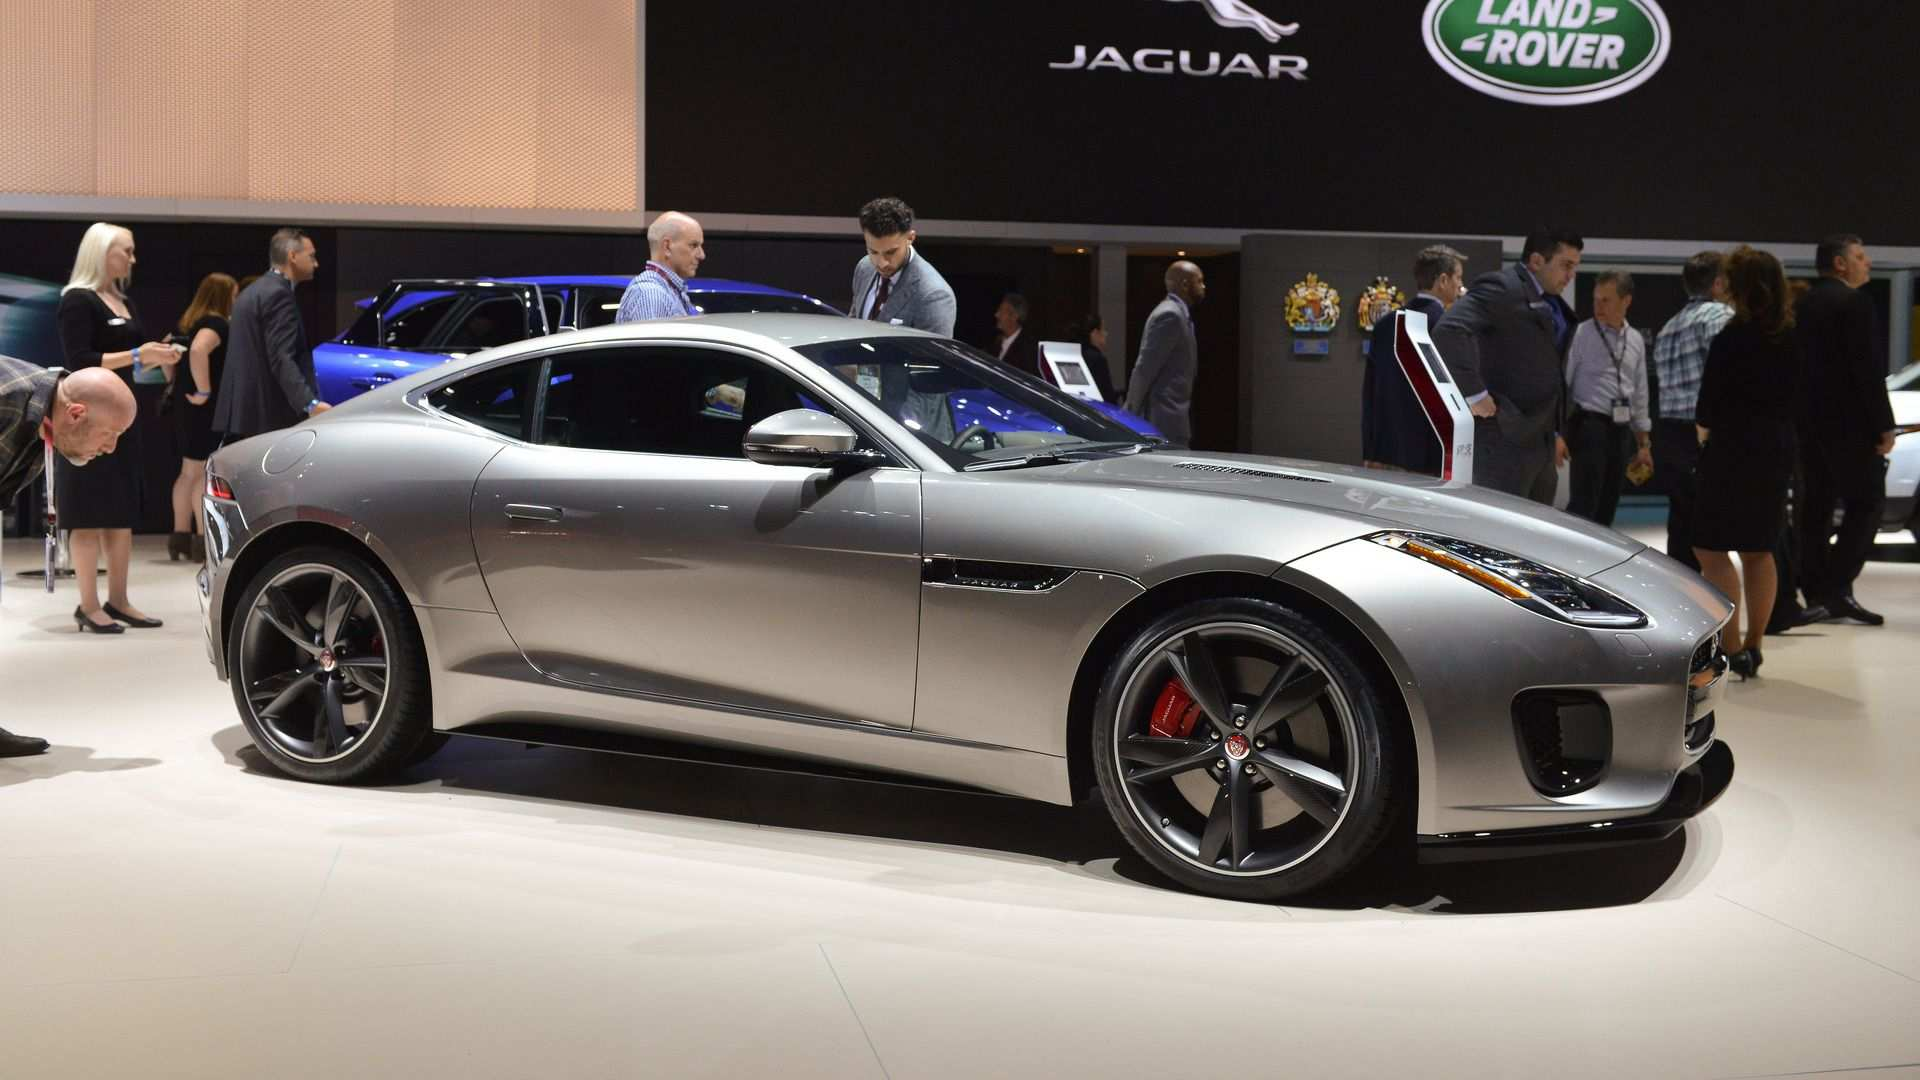 93 Great Jaguar F Type 2020 Release Date Reviews for Jaguar F Type 2020 Release Date